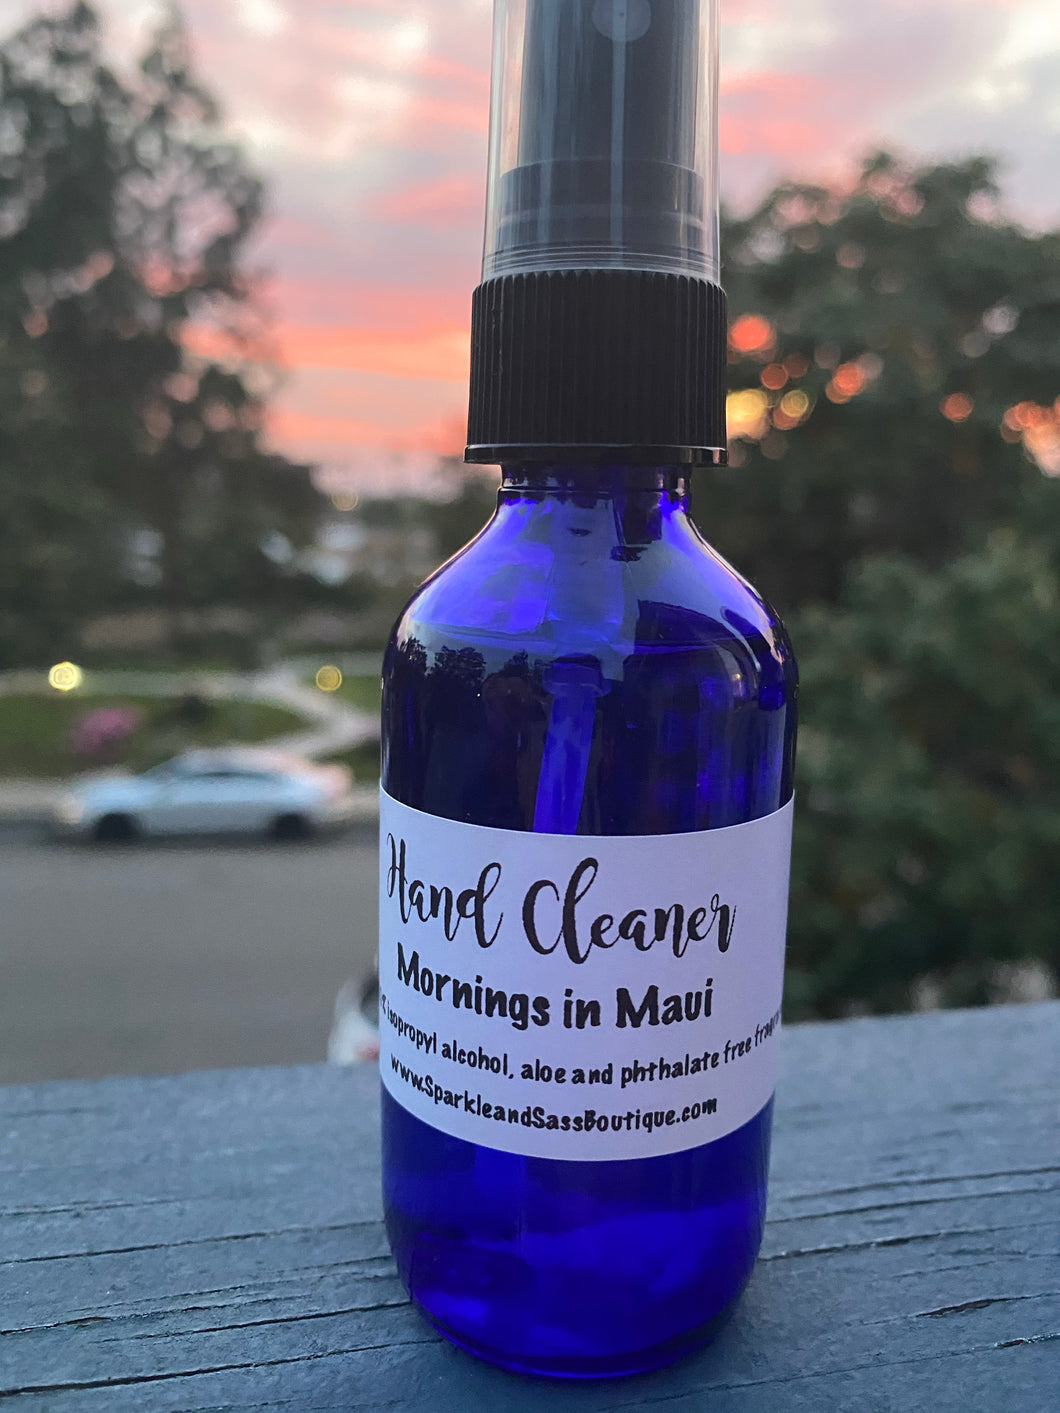 2 oz. Mornings in Maui Hand Cleaner spray